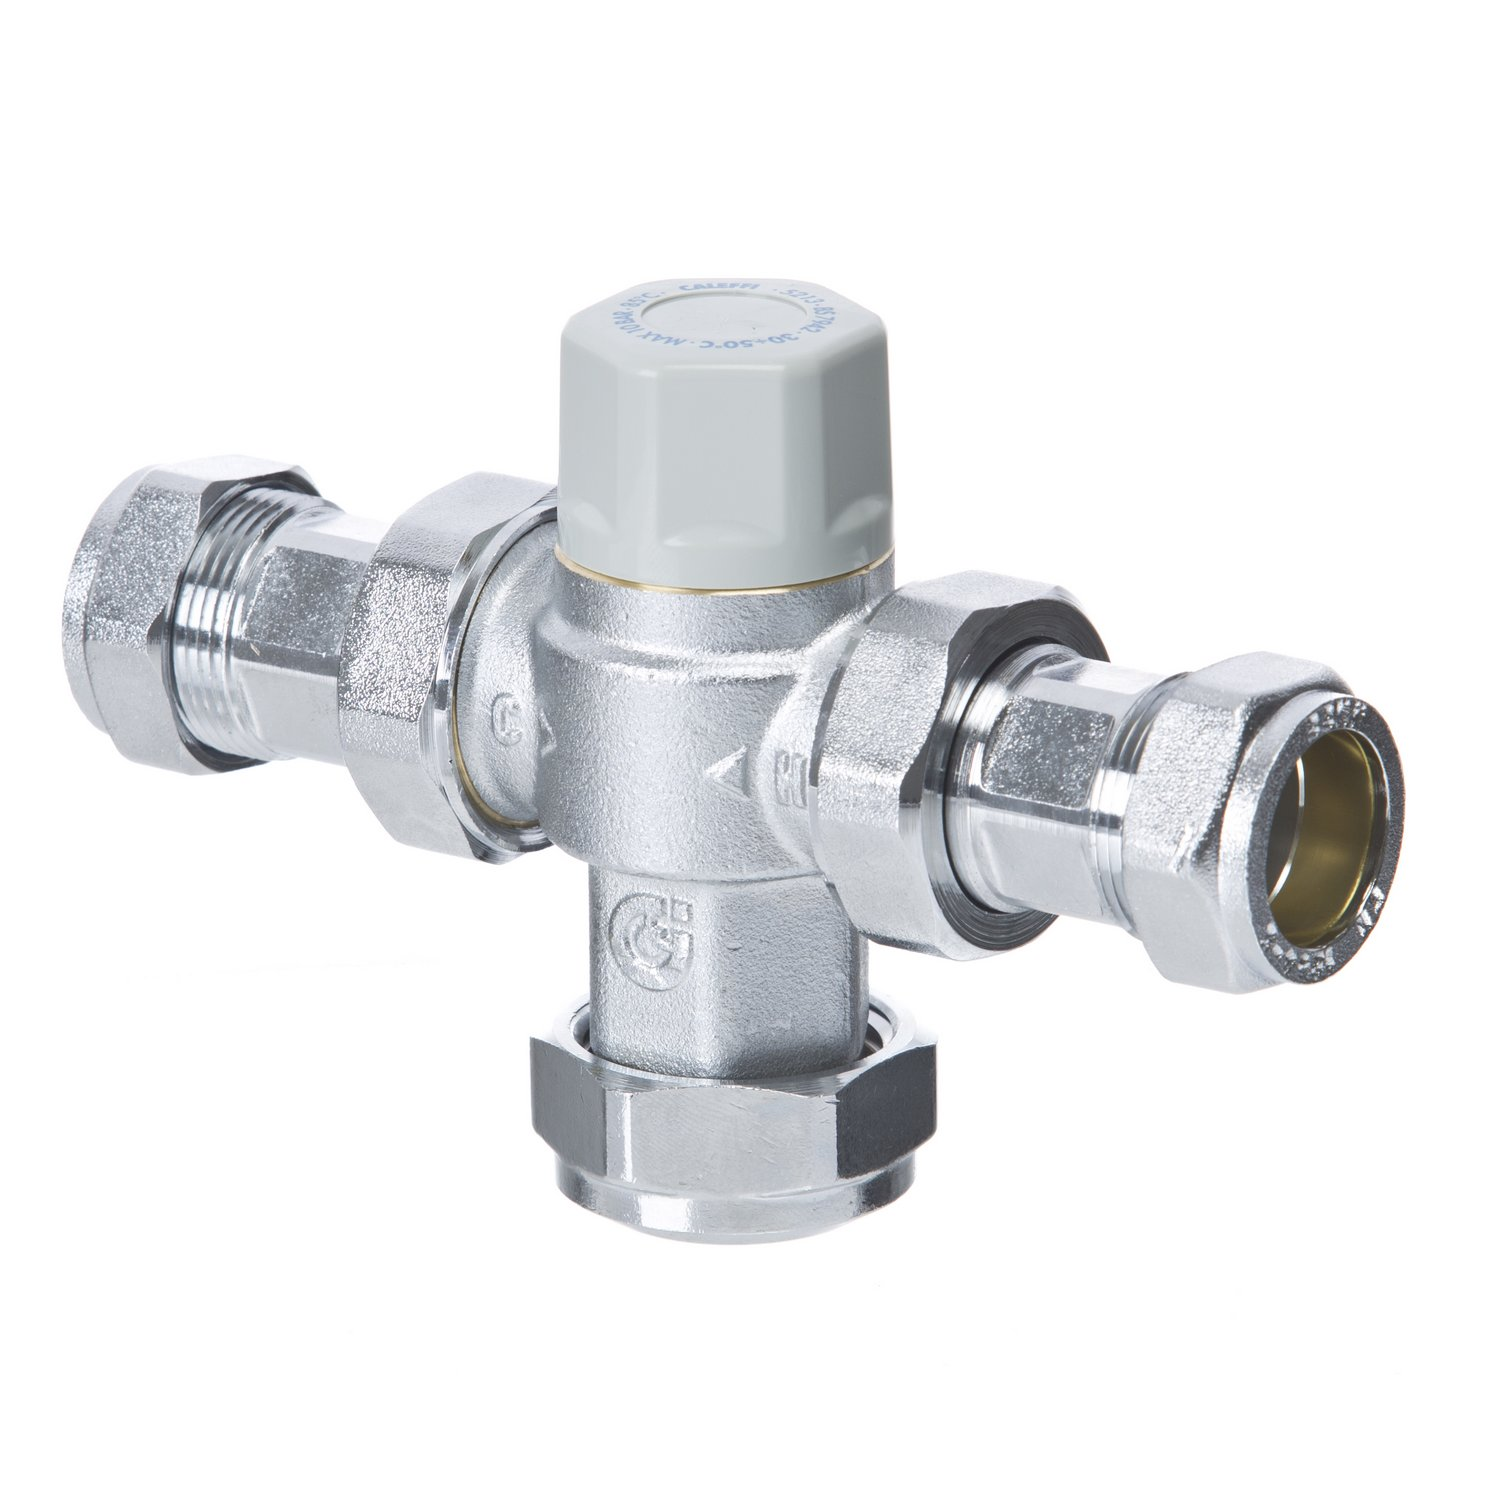 MERCHANT MIXING VALVES - ART 5213.jpg